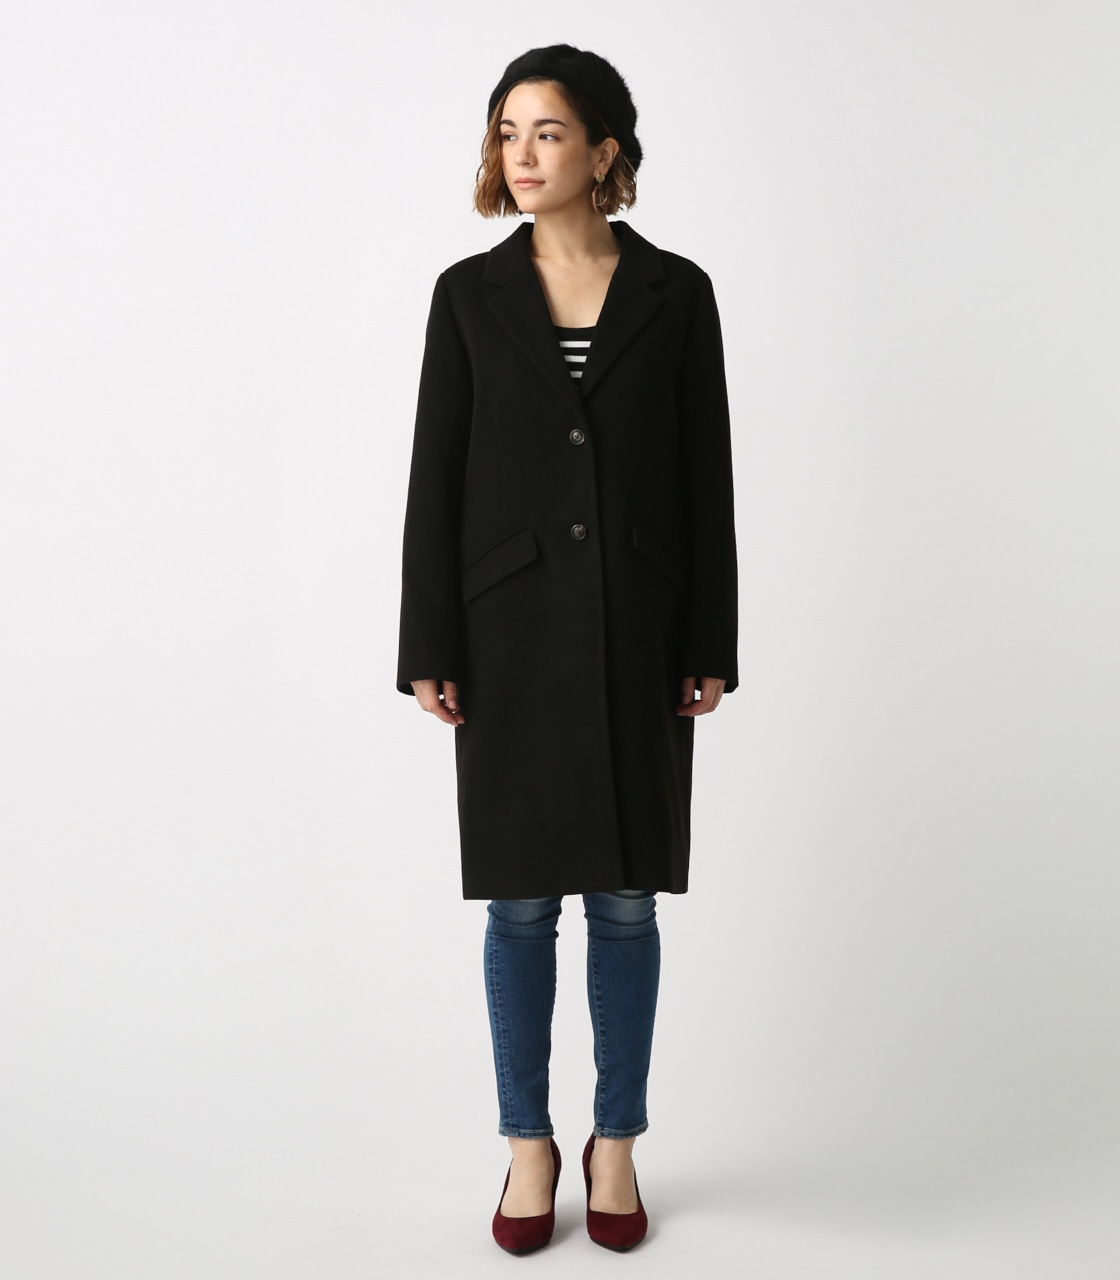 【AZUL BY MOUSSY】スタンダードチェスターコート 詳細画像 BLK 5